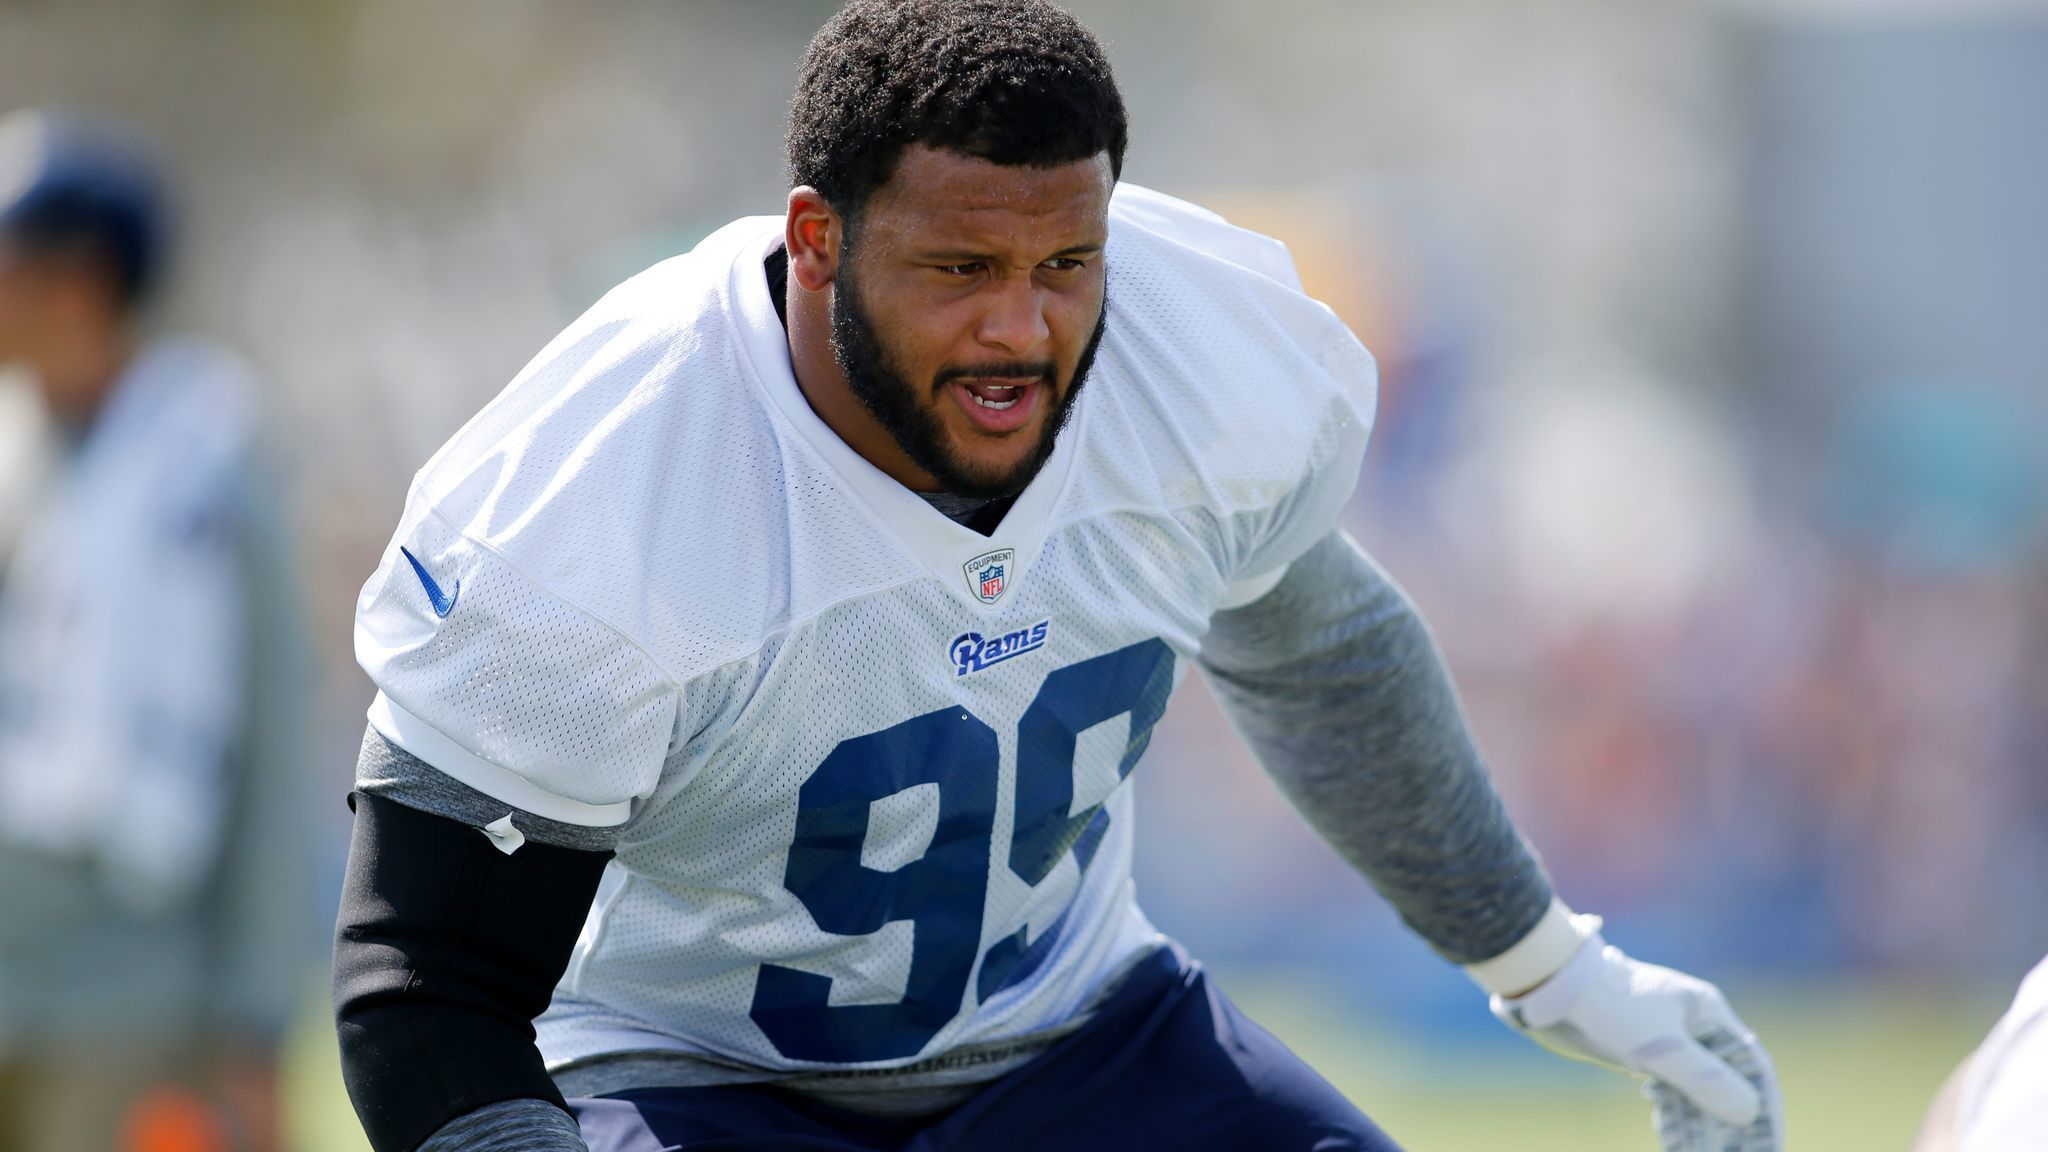 Aaron Donald ends holdout and reports to Rams on eve of opener